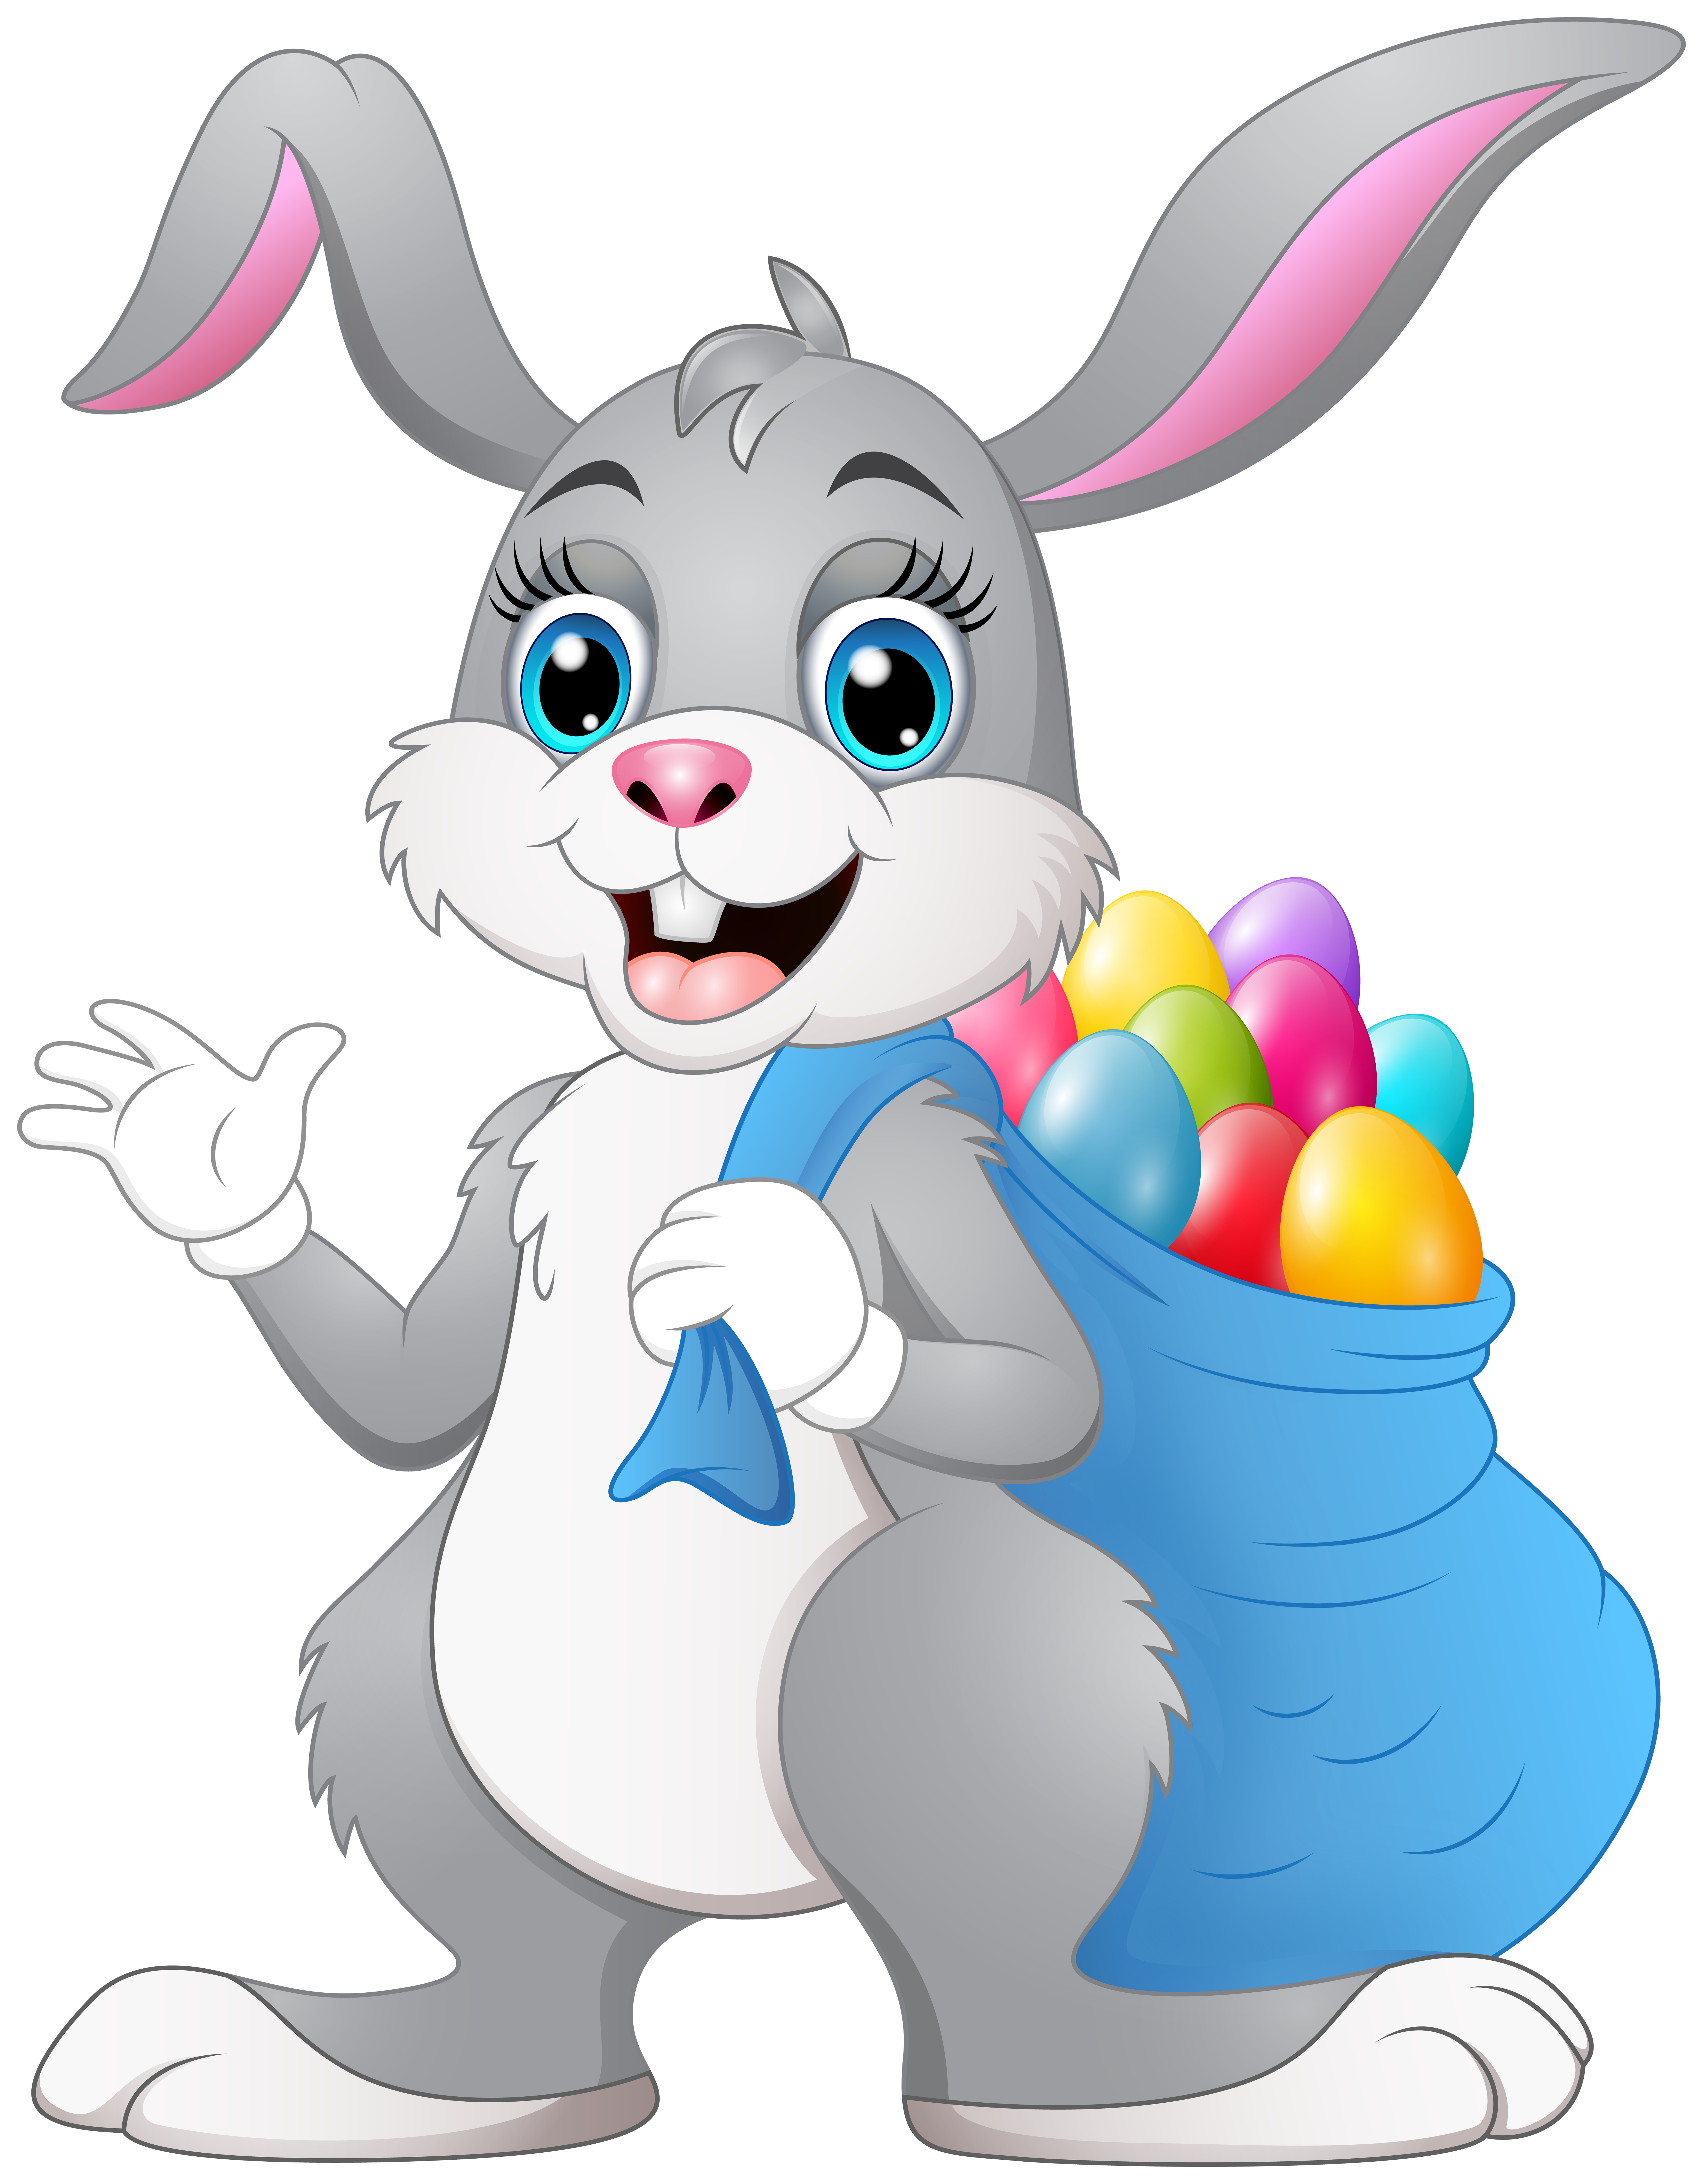 Cute Easter Bunny Transparent Image.